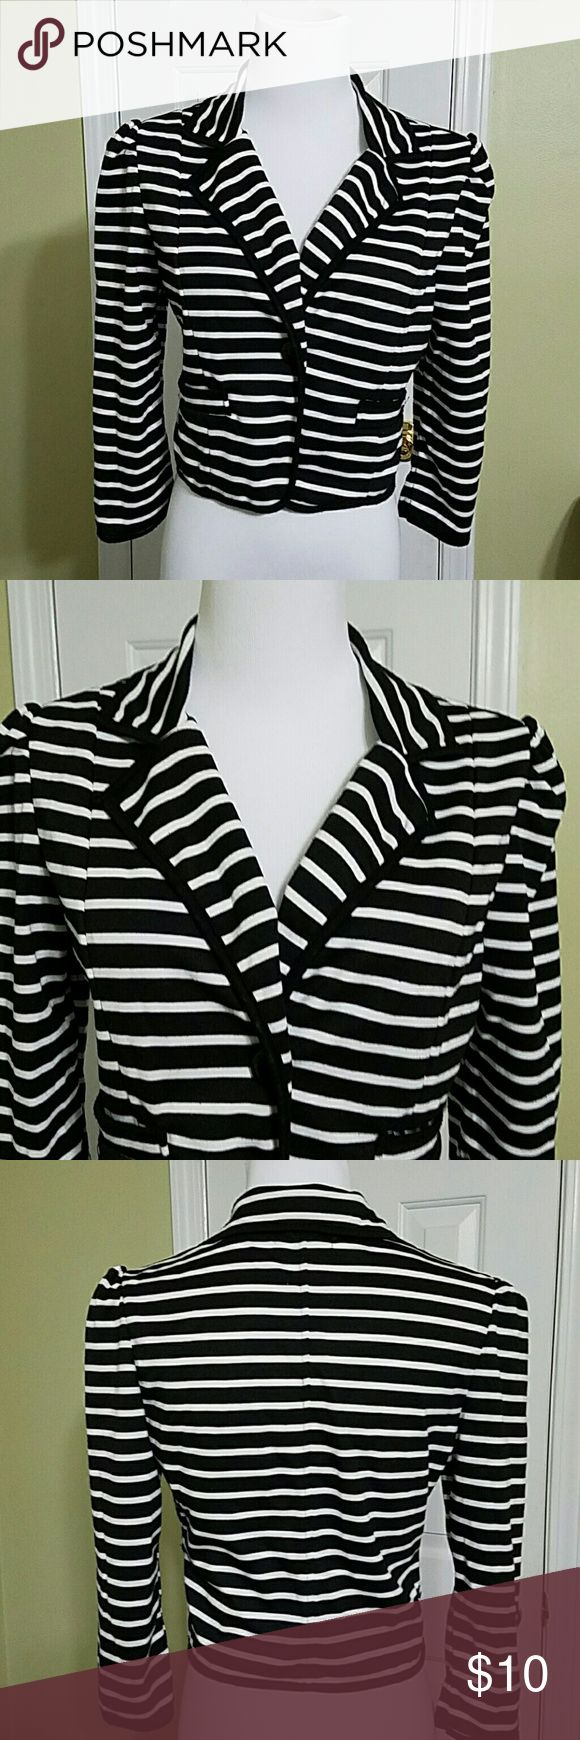 Body Central white and black stripped blazer Body Central white and black stripped blazer.  In good condition.  Length is about 17 inches.  Bust is about 32 inches.  Made of 100% polyester. Body Central Jackets & Coats